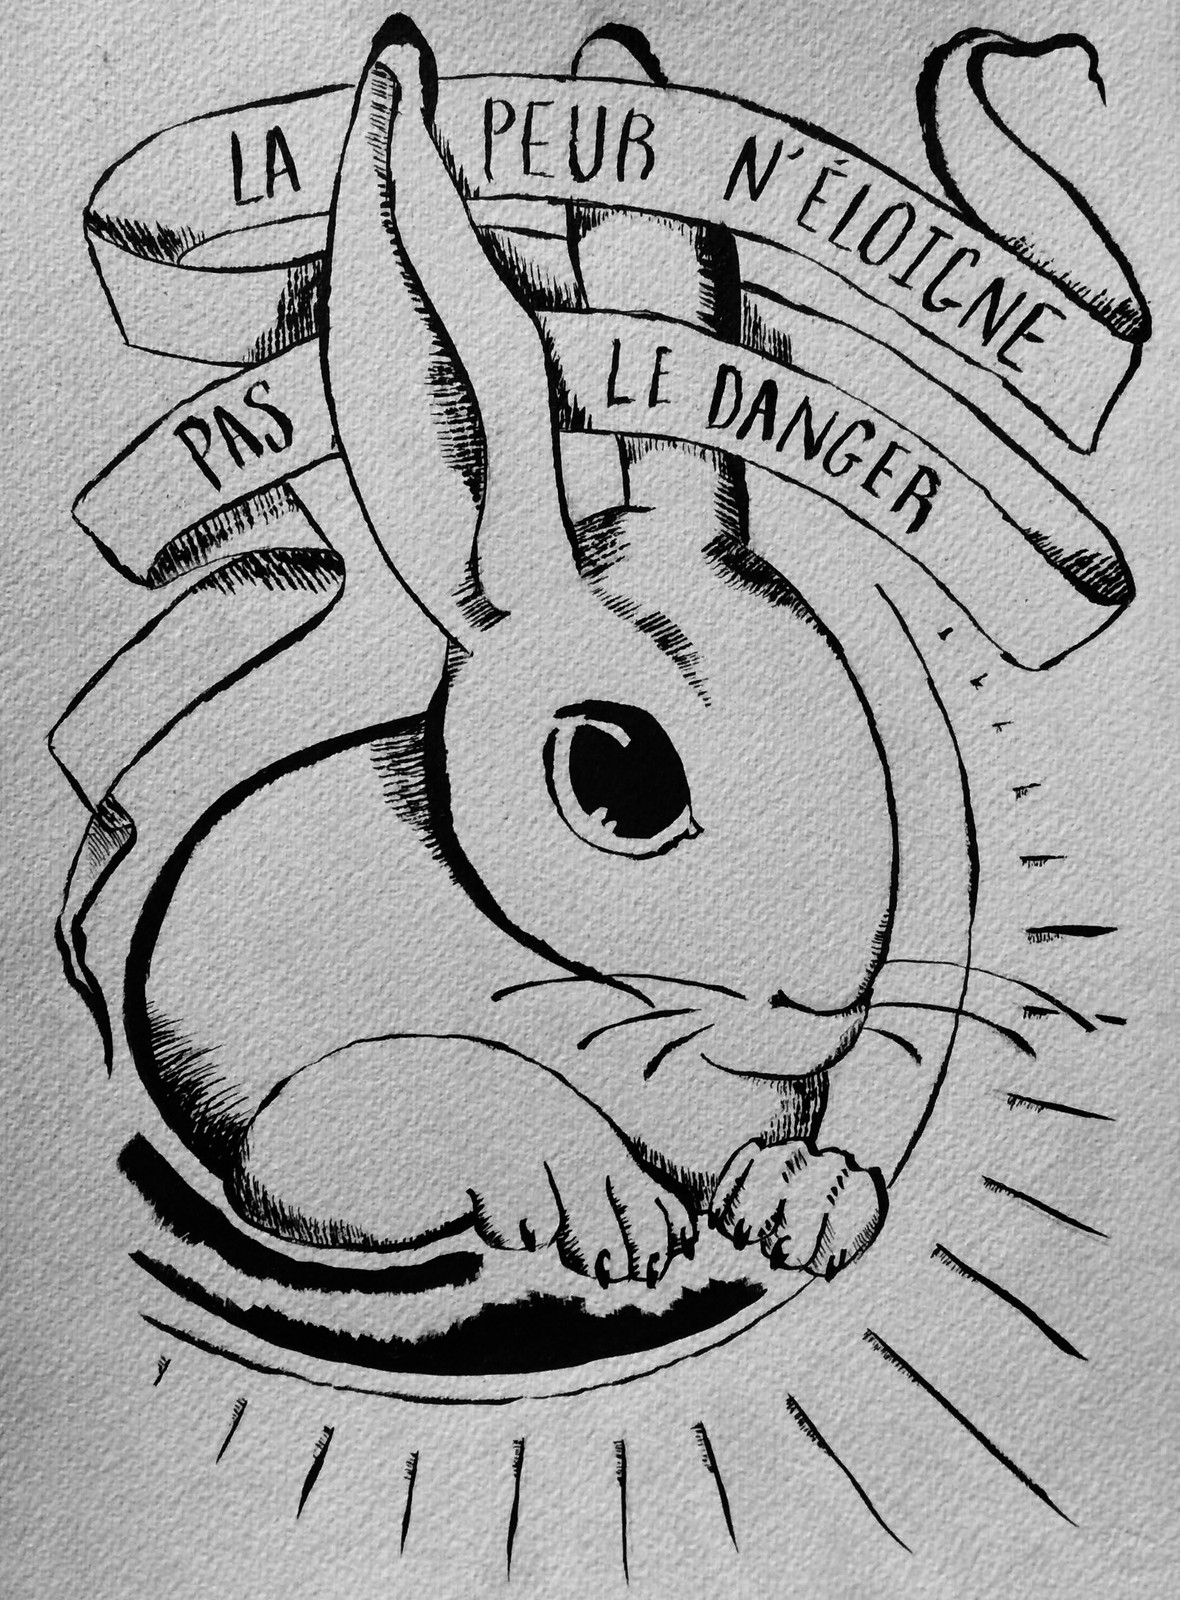 """La peur n'eloigne pas le danger"" / ""Fear does not distance danger"" (saying)"